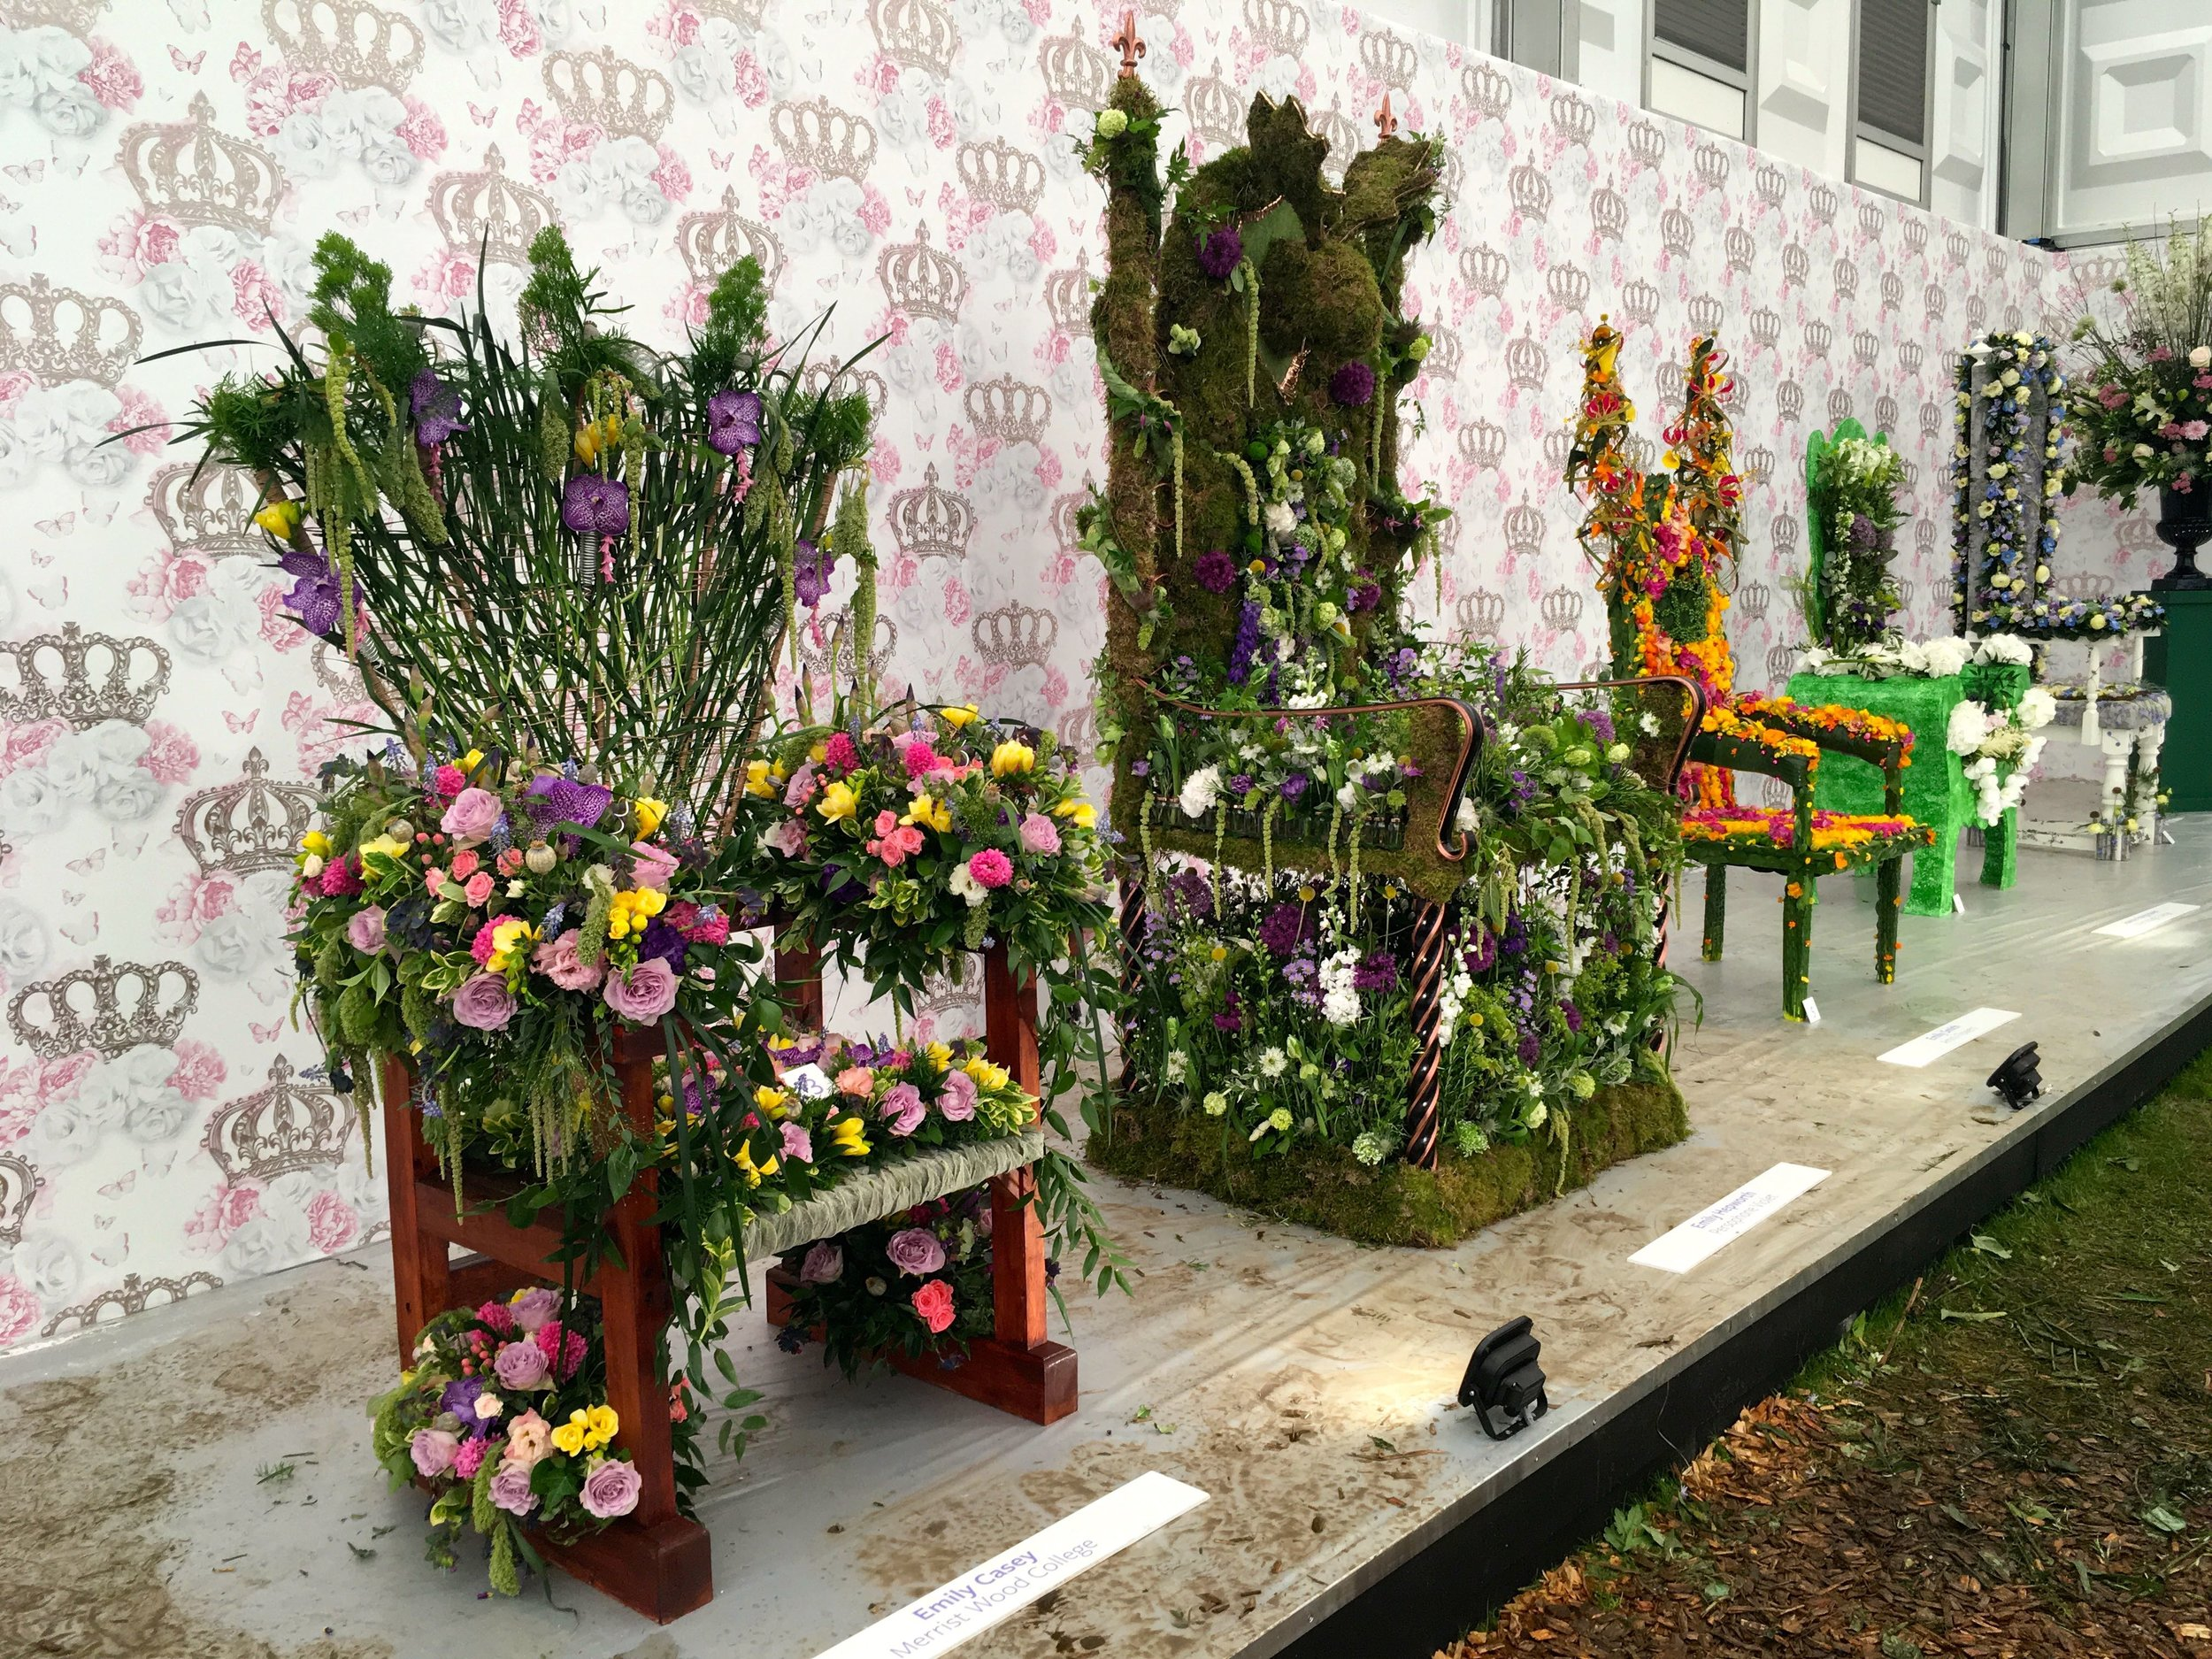 A row of floral thrones at the 2018 chelsea flower show